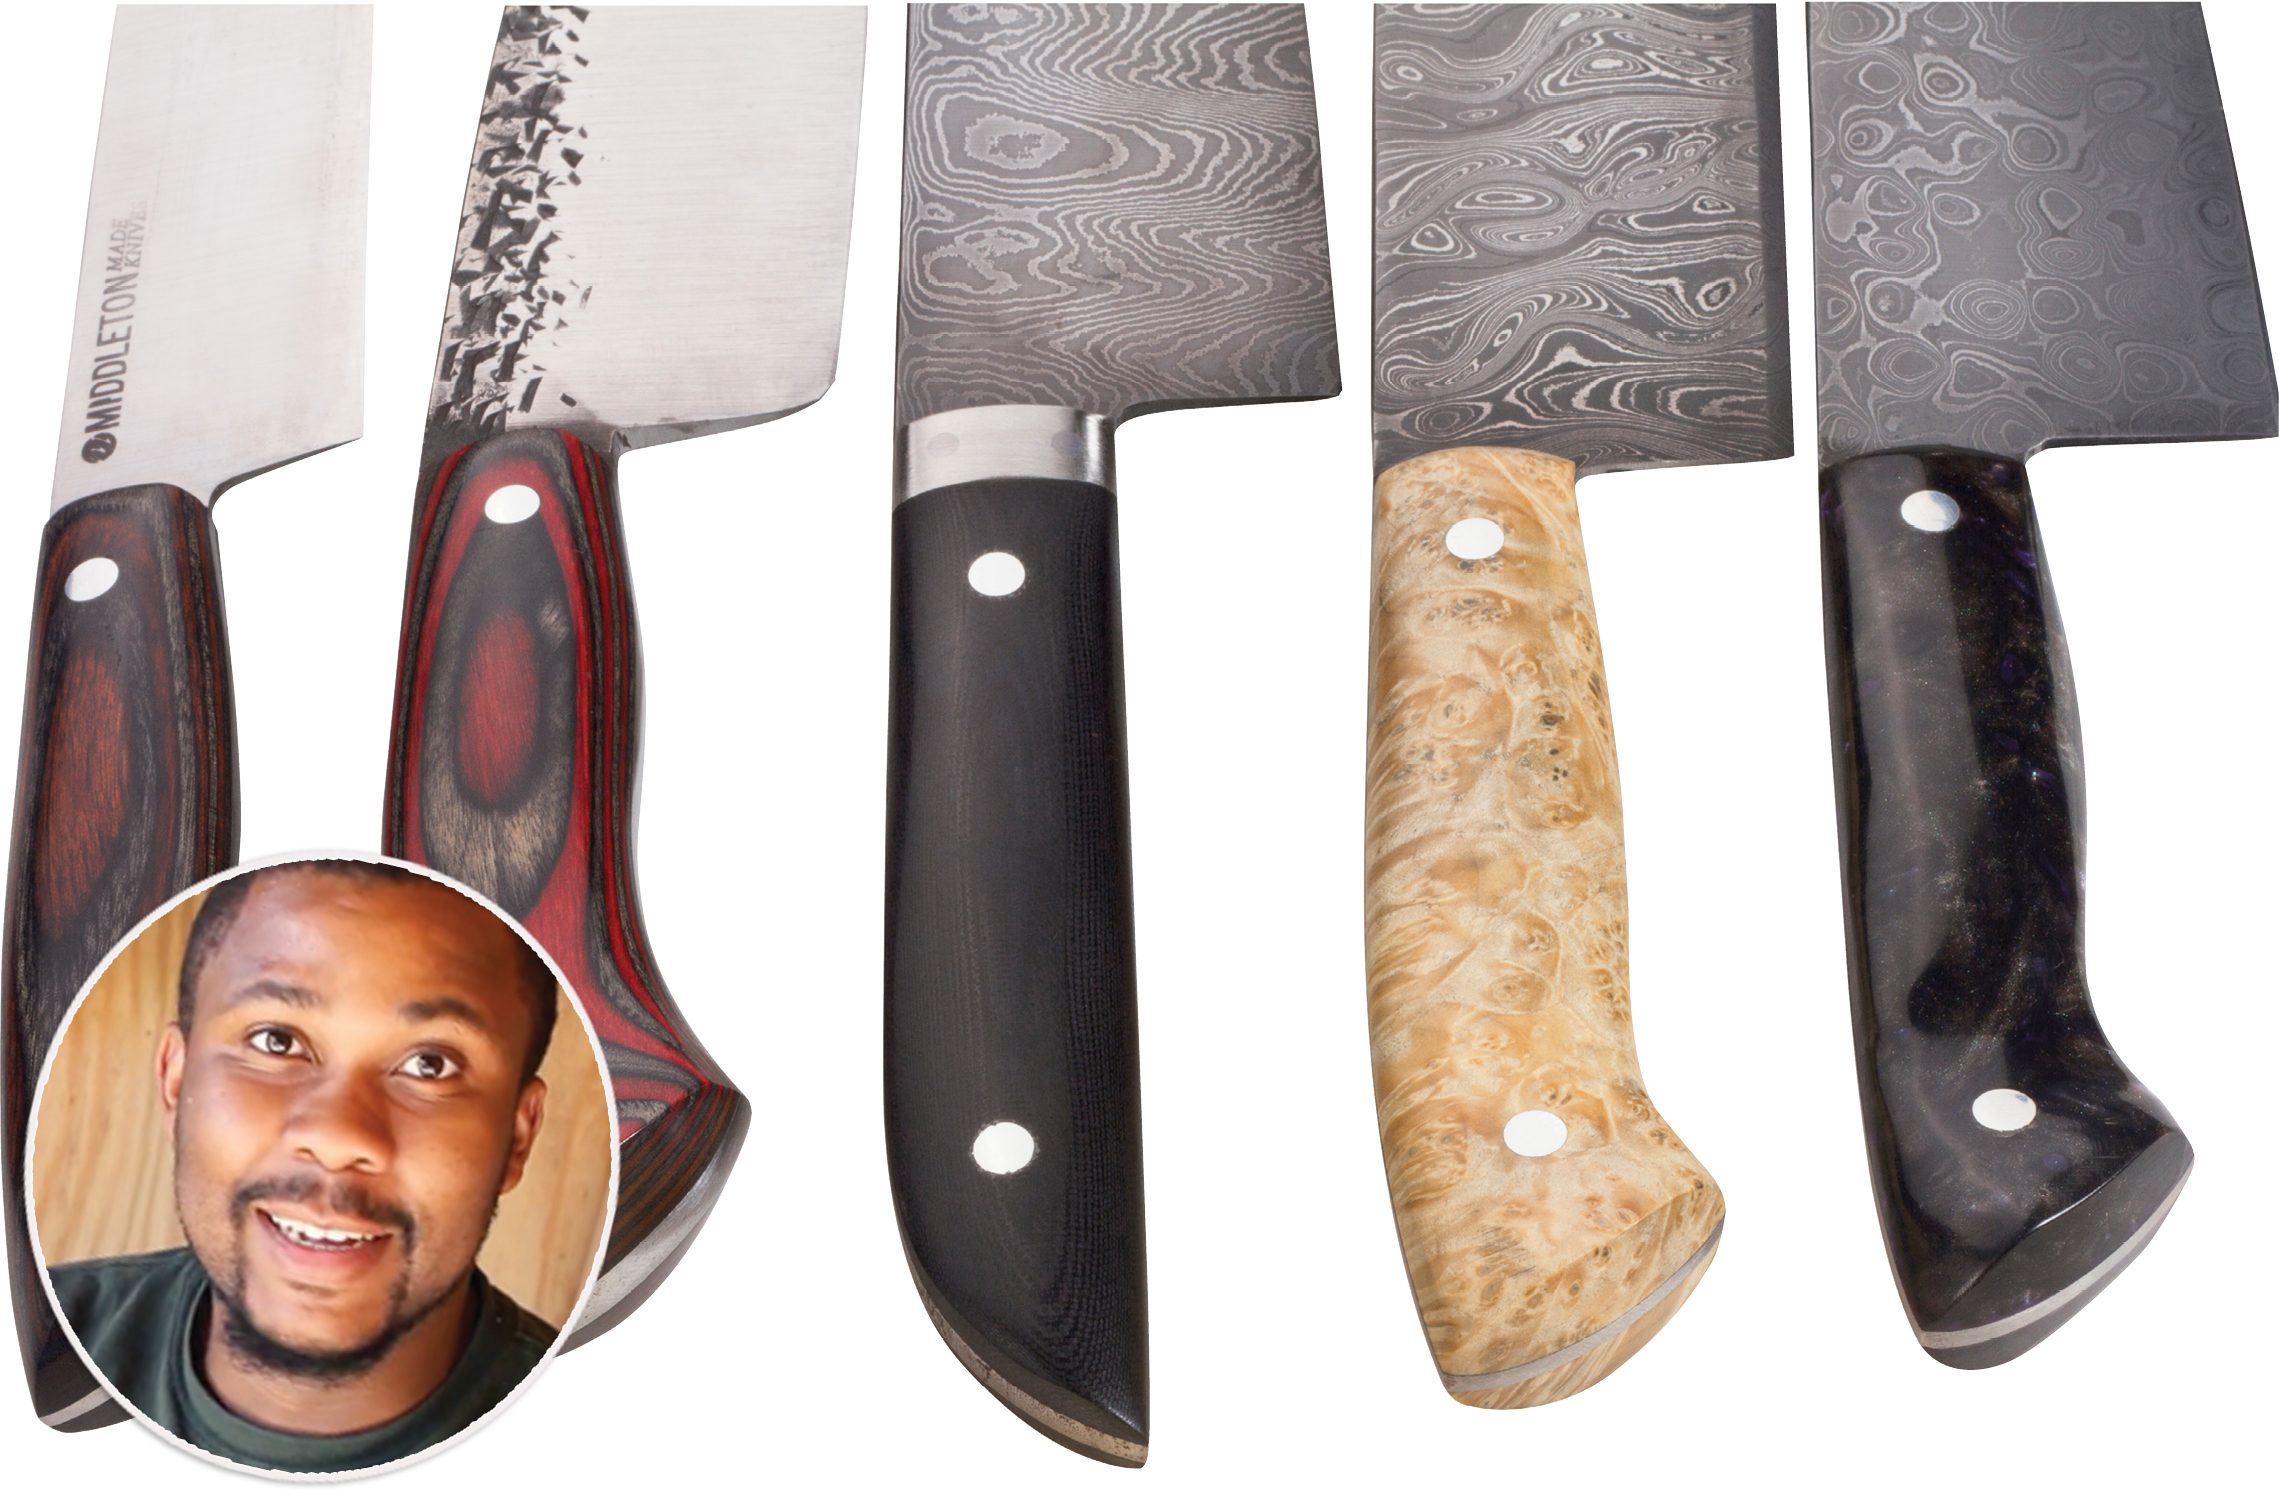 KNIVES: Middleton Made; custom-crafted blades by Saint Stephen-based artisan Quintin Middleton